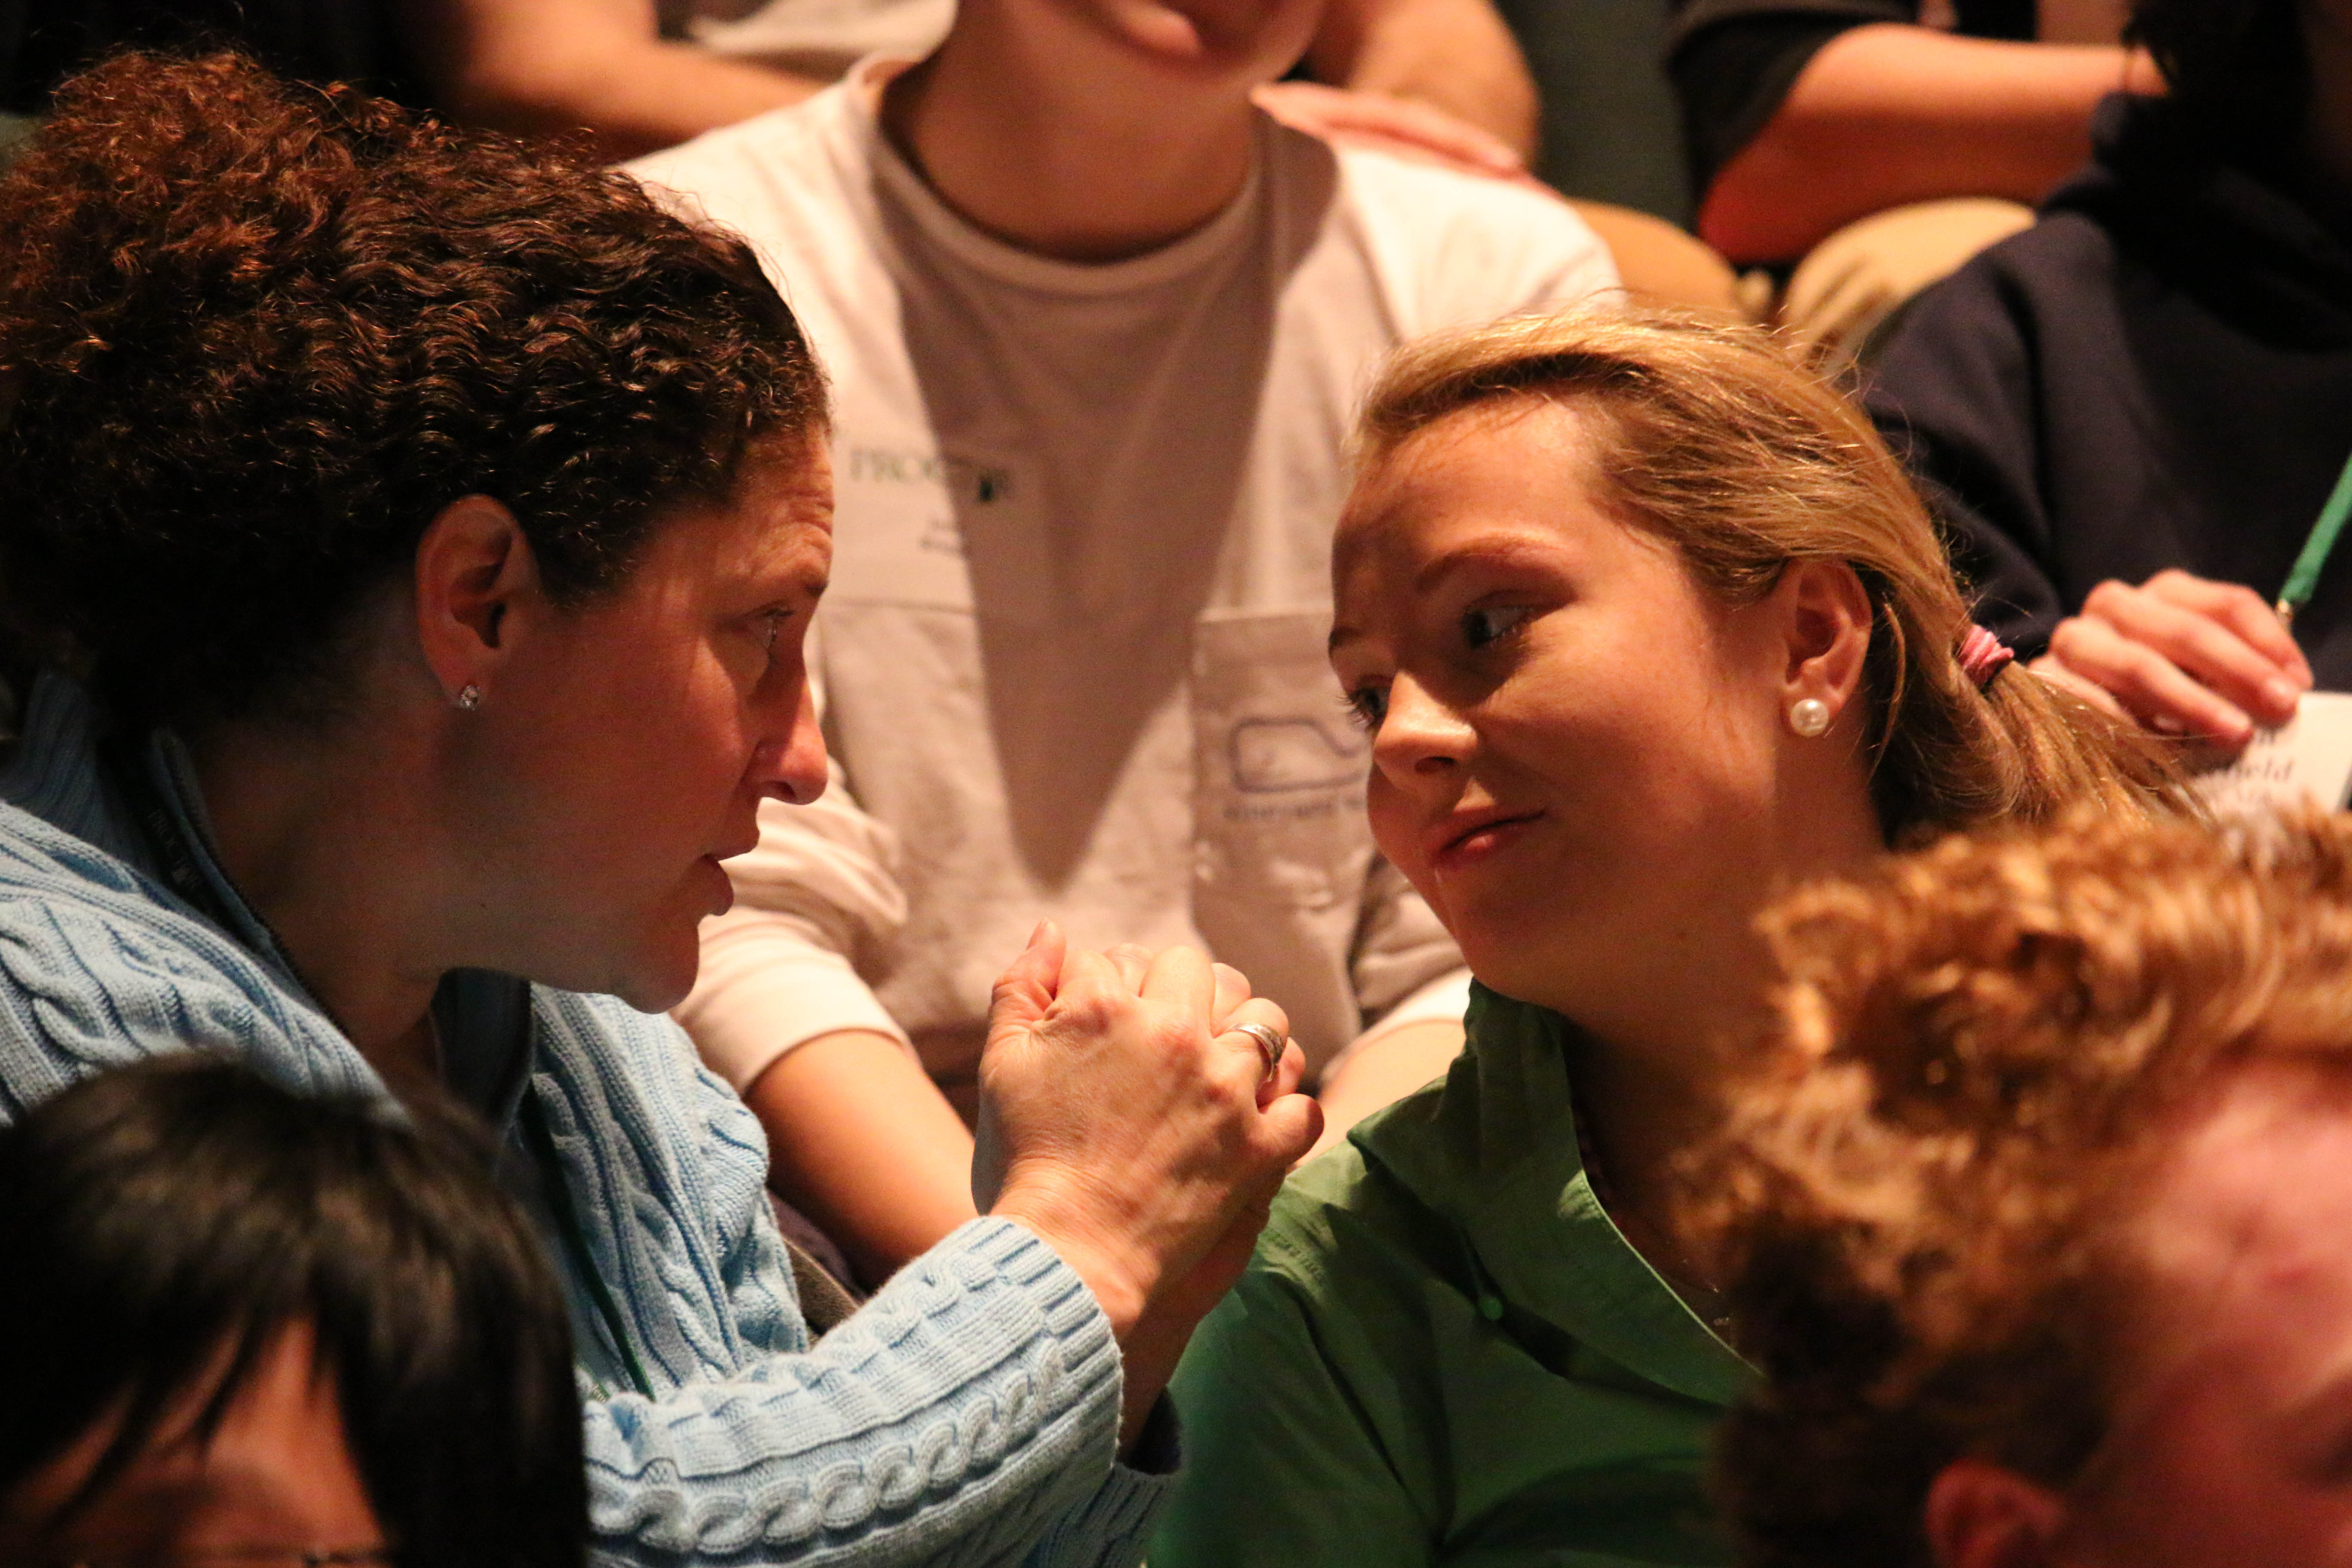 Proctor Academy faculty student relationships